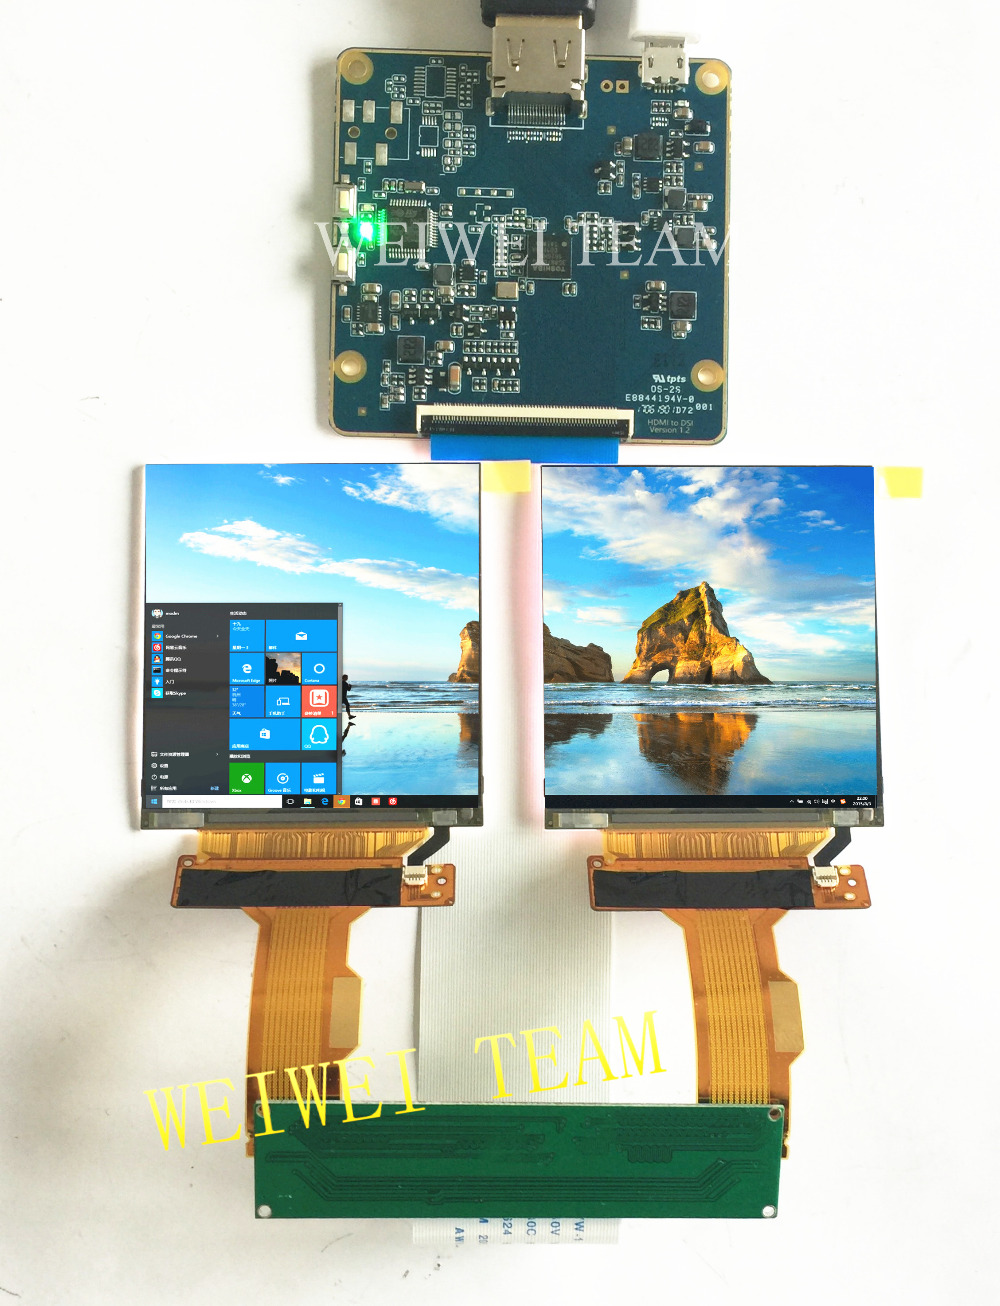 US $67 55 30% OFF 2 9 inch 1440X1440 TFT dual LCD display HDMI MIPI  controller board for 3D VR Glasses headset HMD windows mixed reality-in  Mobile